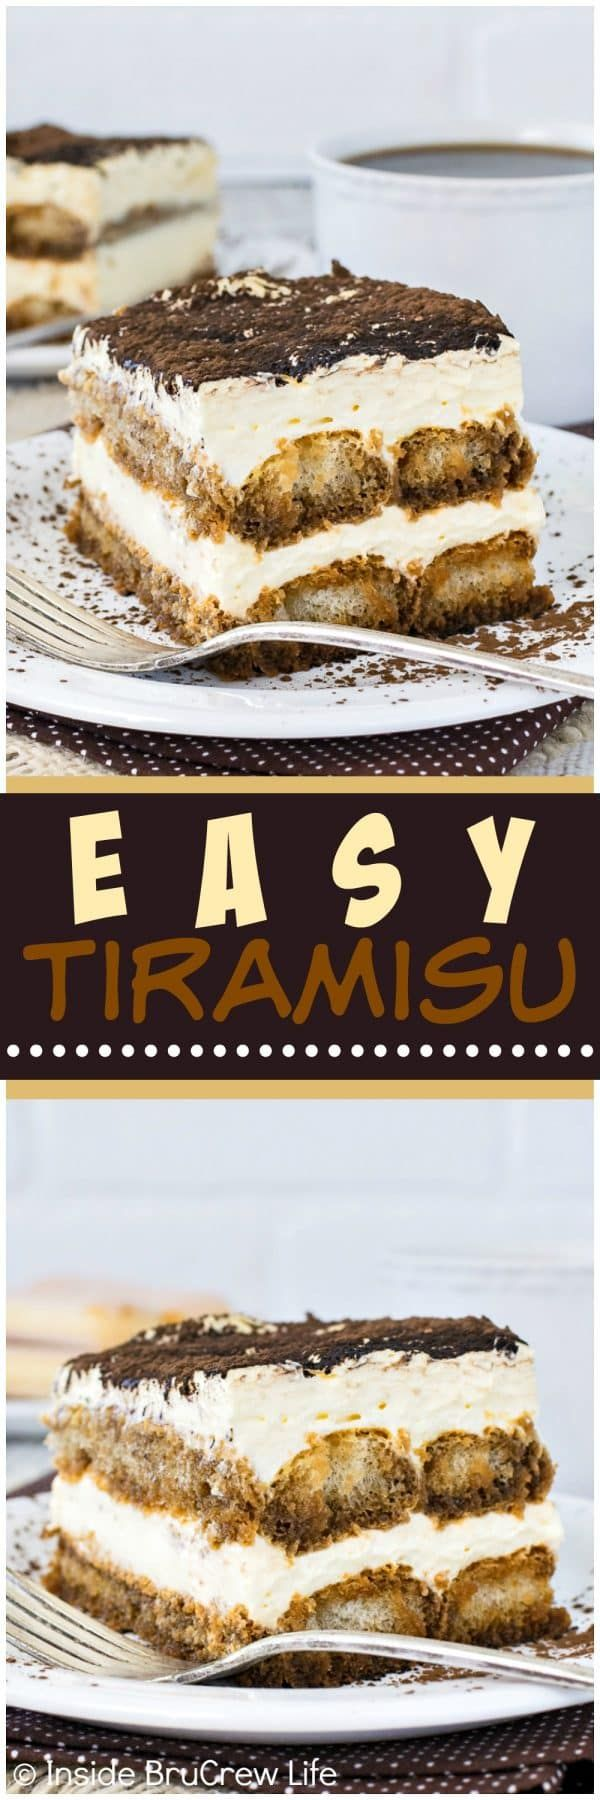 Easy Tiramisu - layers of creamy cheesecake and coffee soaked cookies will have this pan of no bake dessert disappear in a hurry. Great recipe for summer picnics or fancy dinner parties!